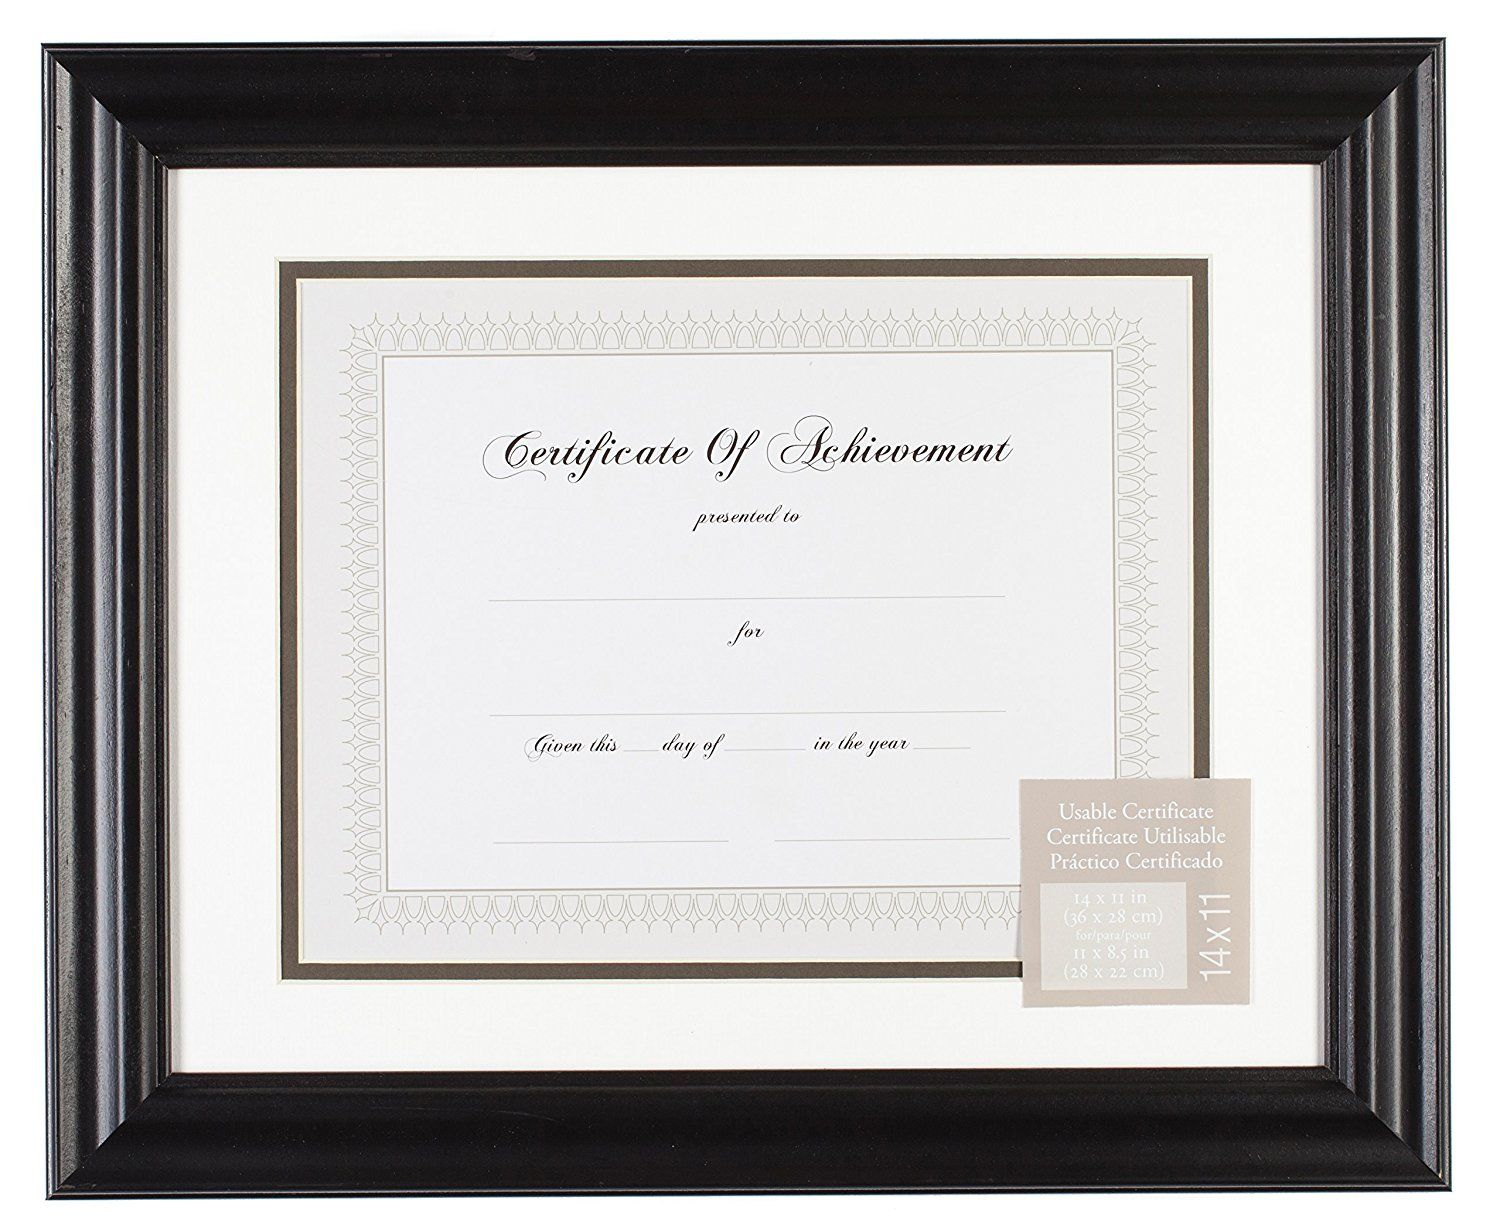 Gallery Solutions Black Satin Document Frame With Fillet Mat 11 By 14 Inch Matted To 8 1 2 By 11 Inch Read More Rev Frame Document Frame Certificate Frames